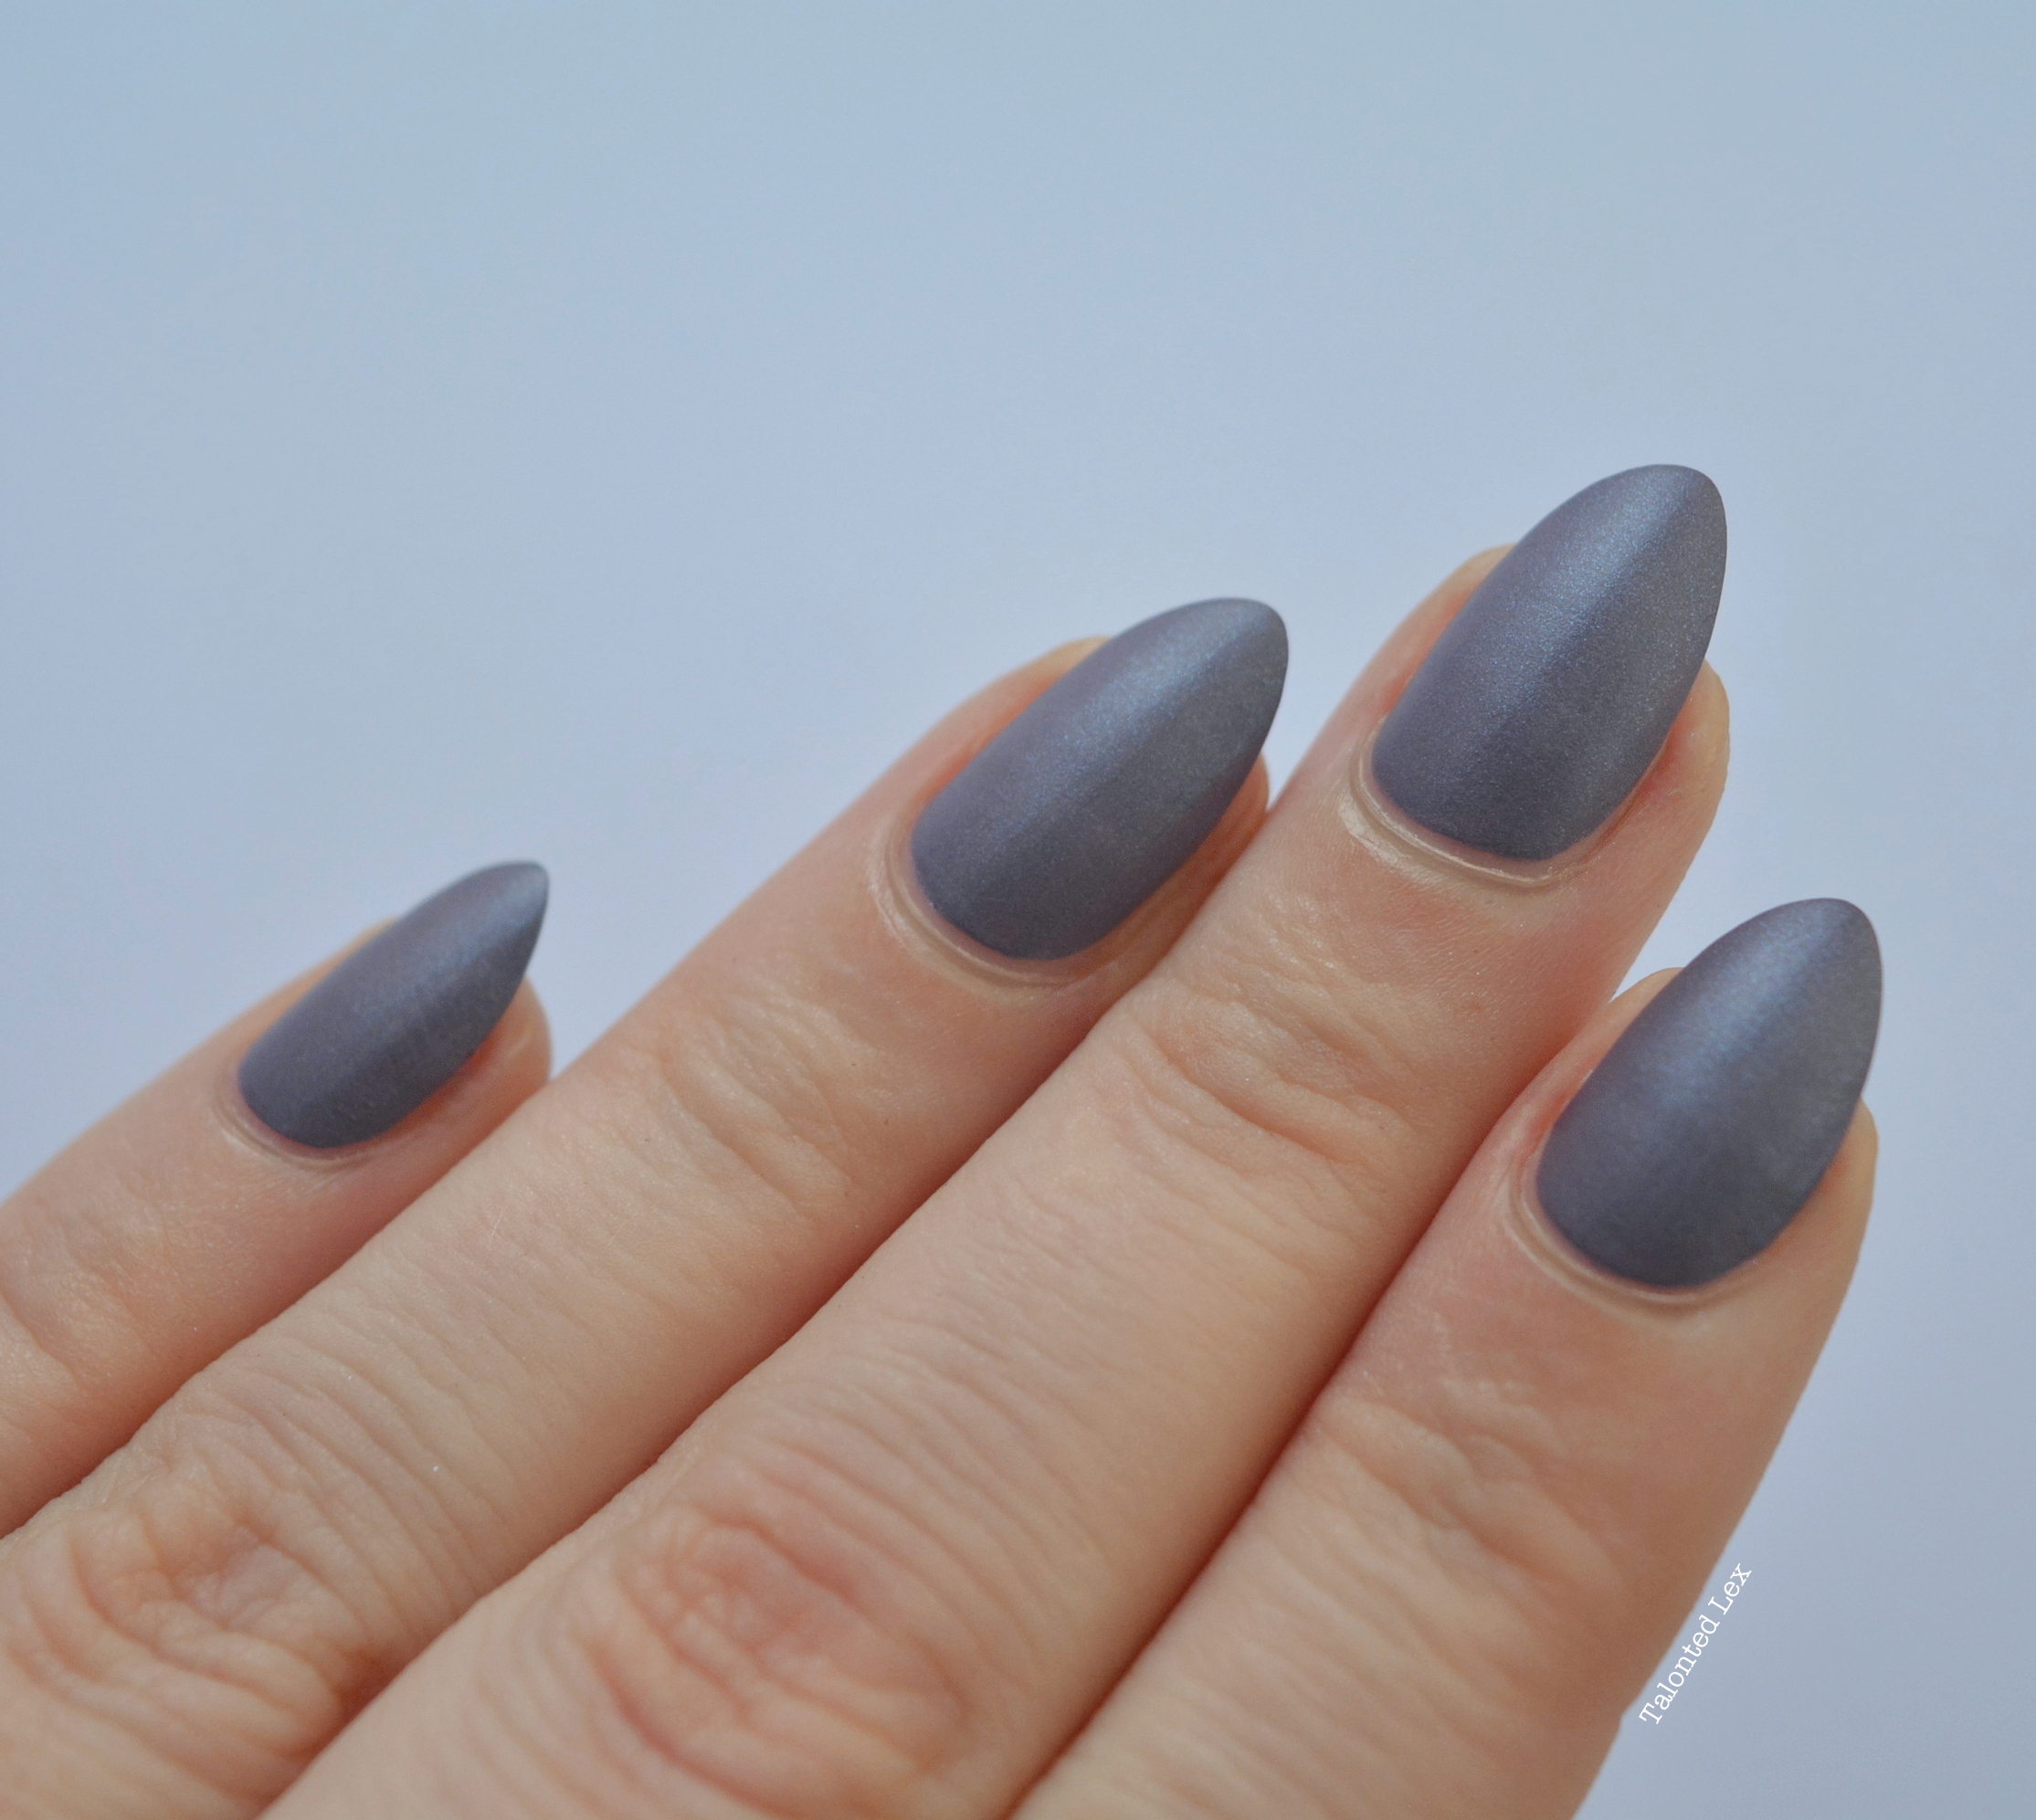 essie-Cashmere-Collection-matte-review-swatches-coat-couture-talonted-lex-2